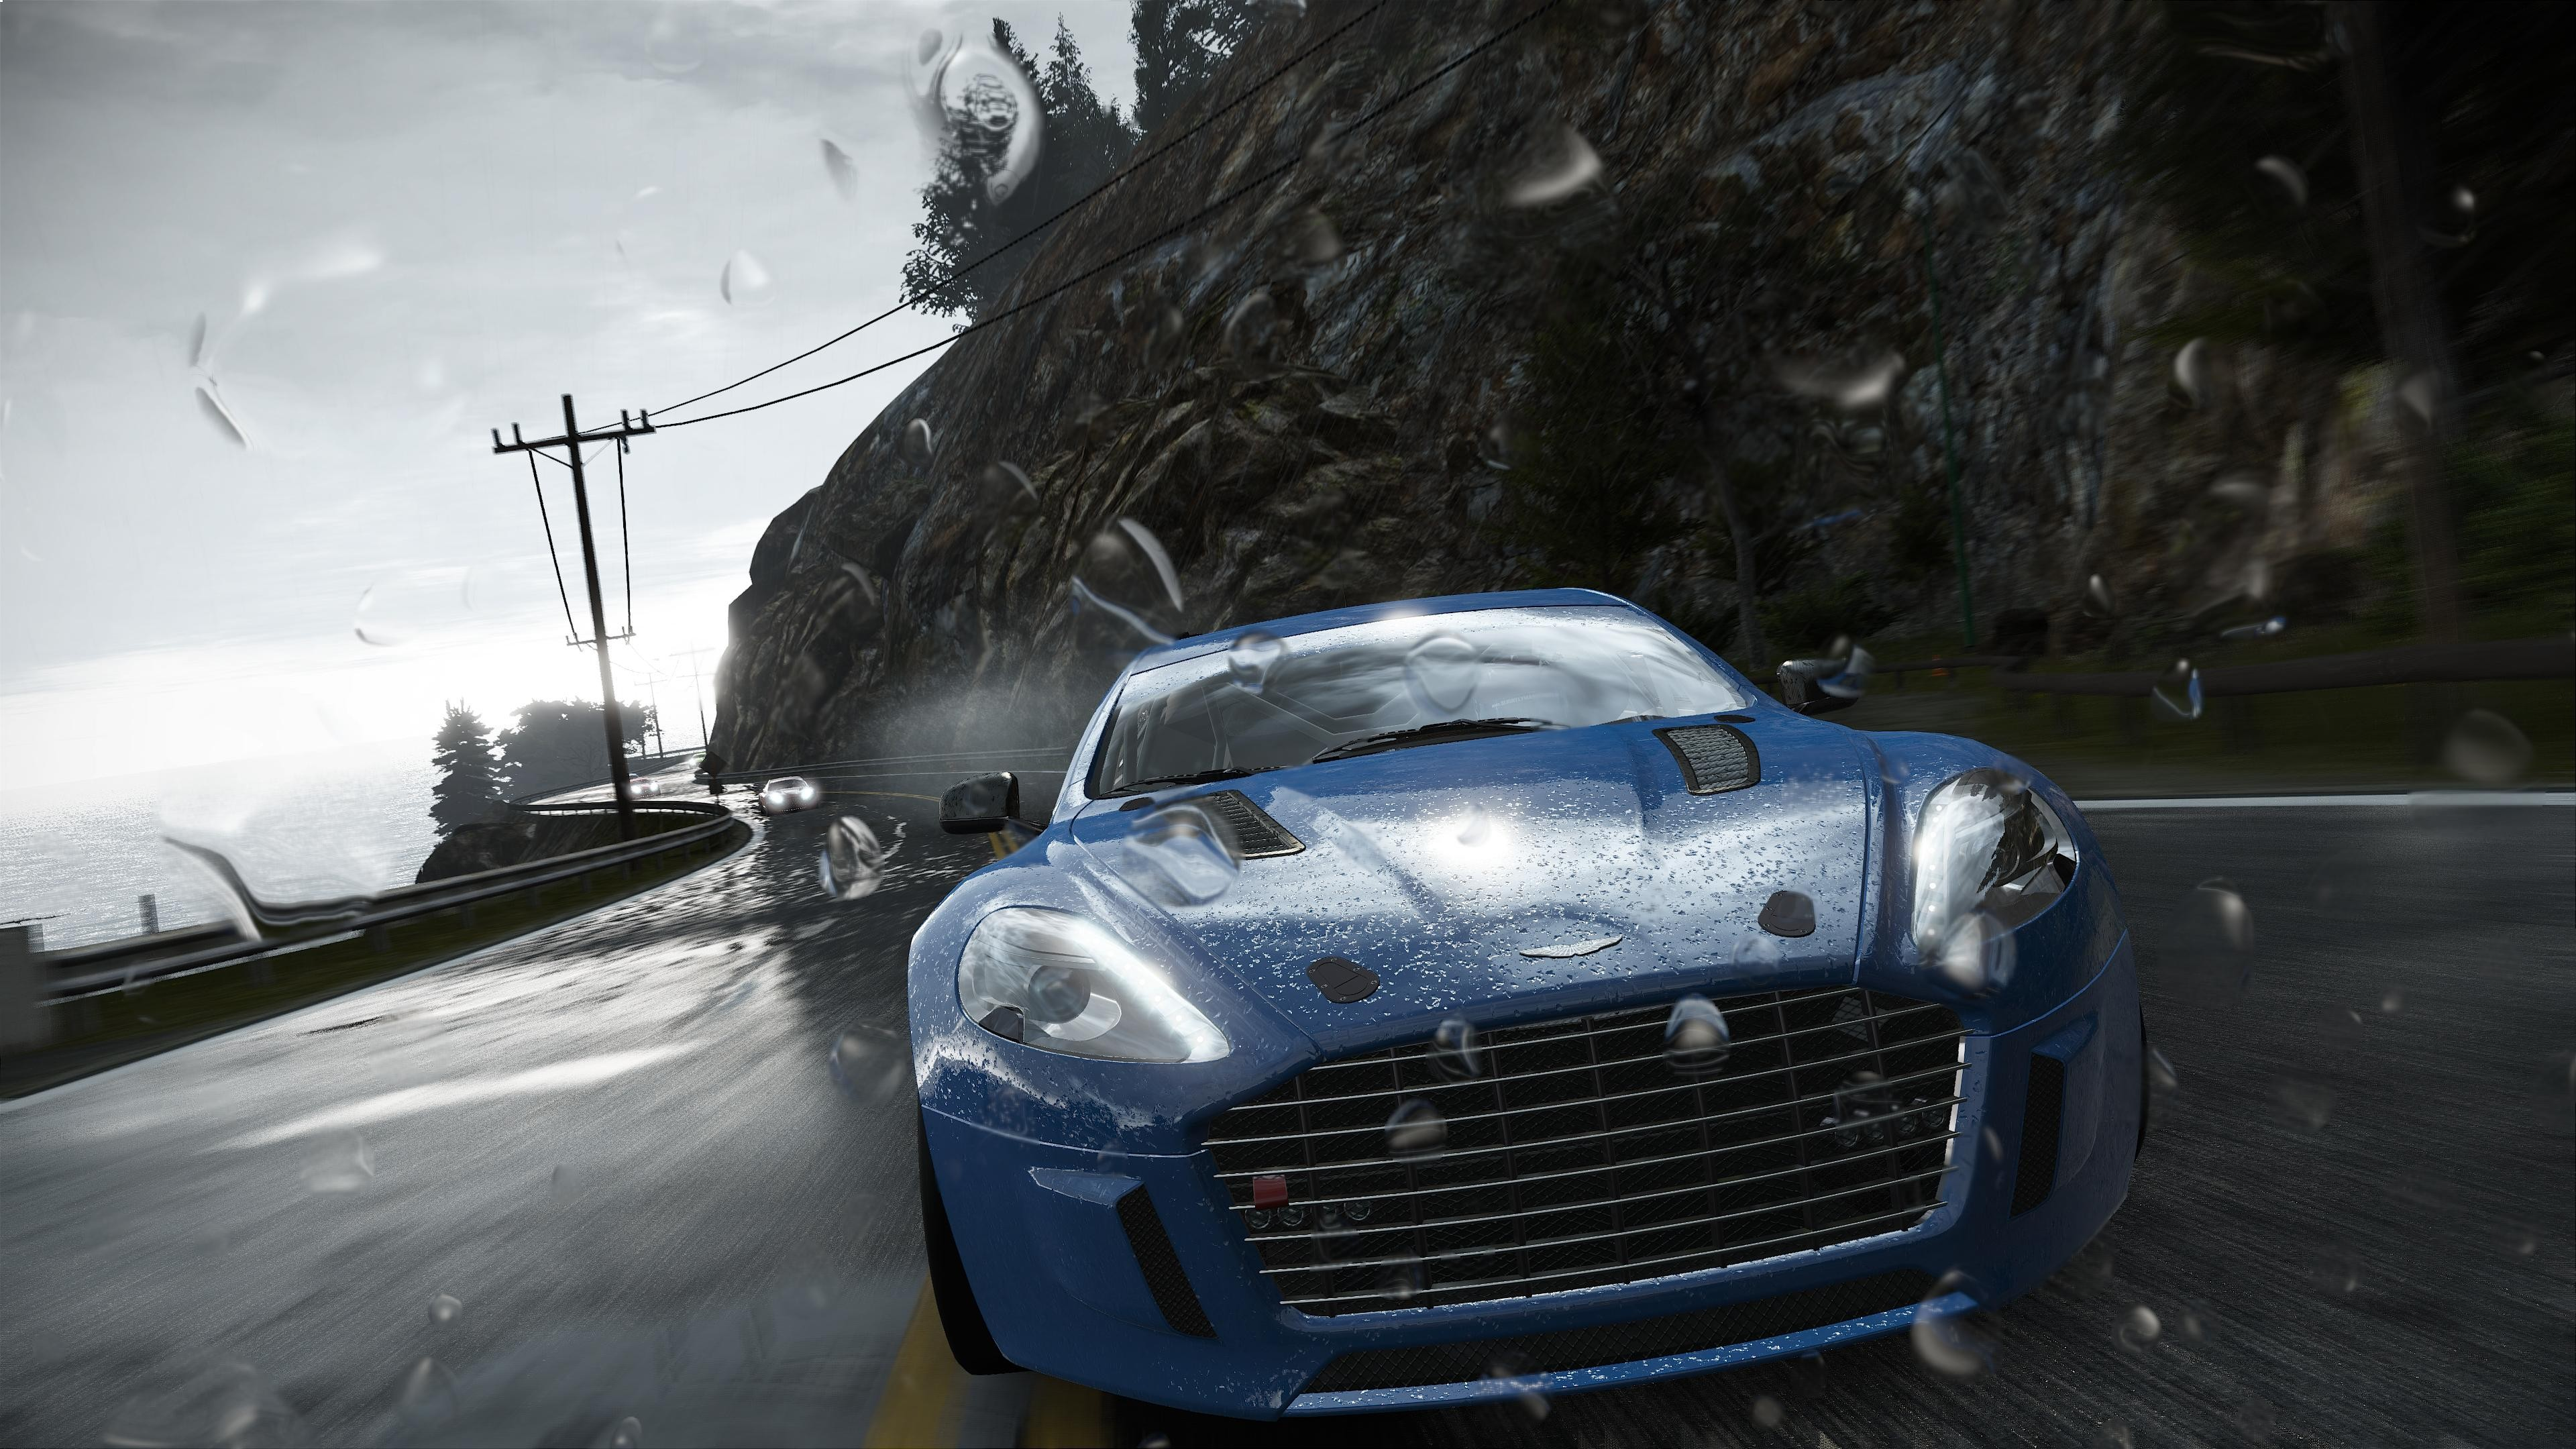 Wallpaper Project CARS Best Games 2015 Best Racing Games 2015 Racing Car Gameplay Review